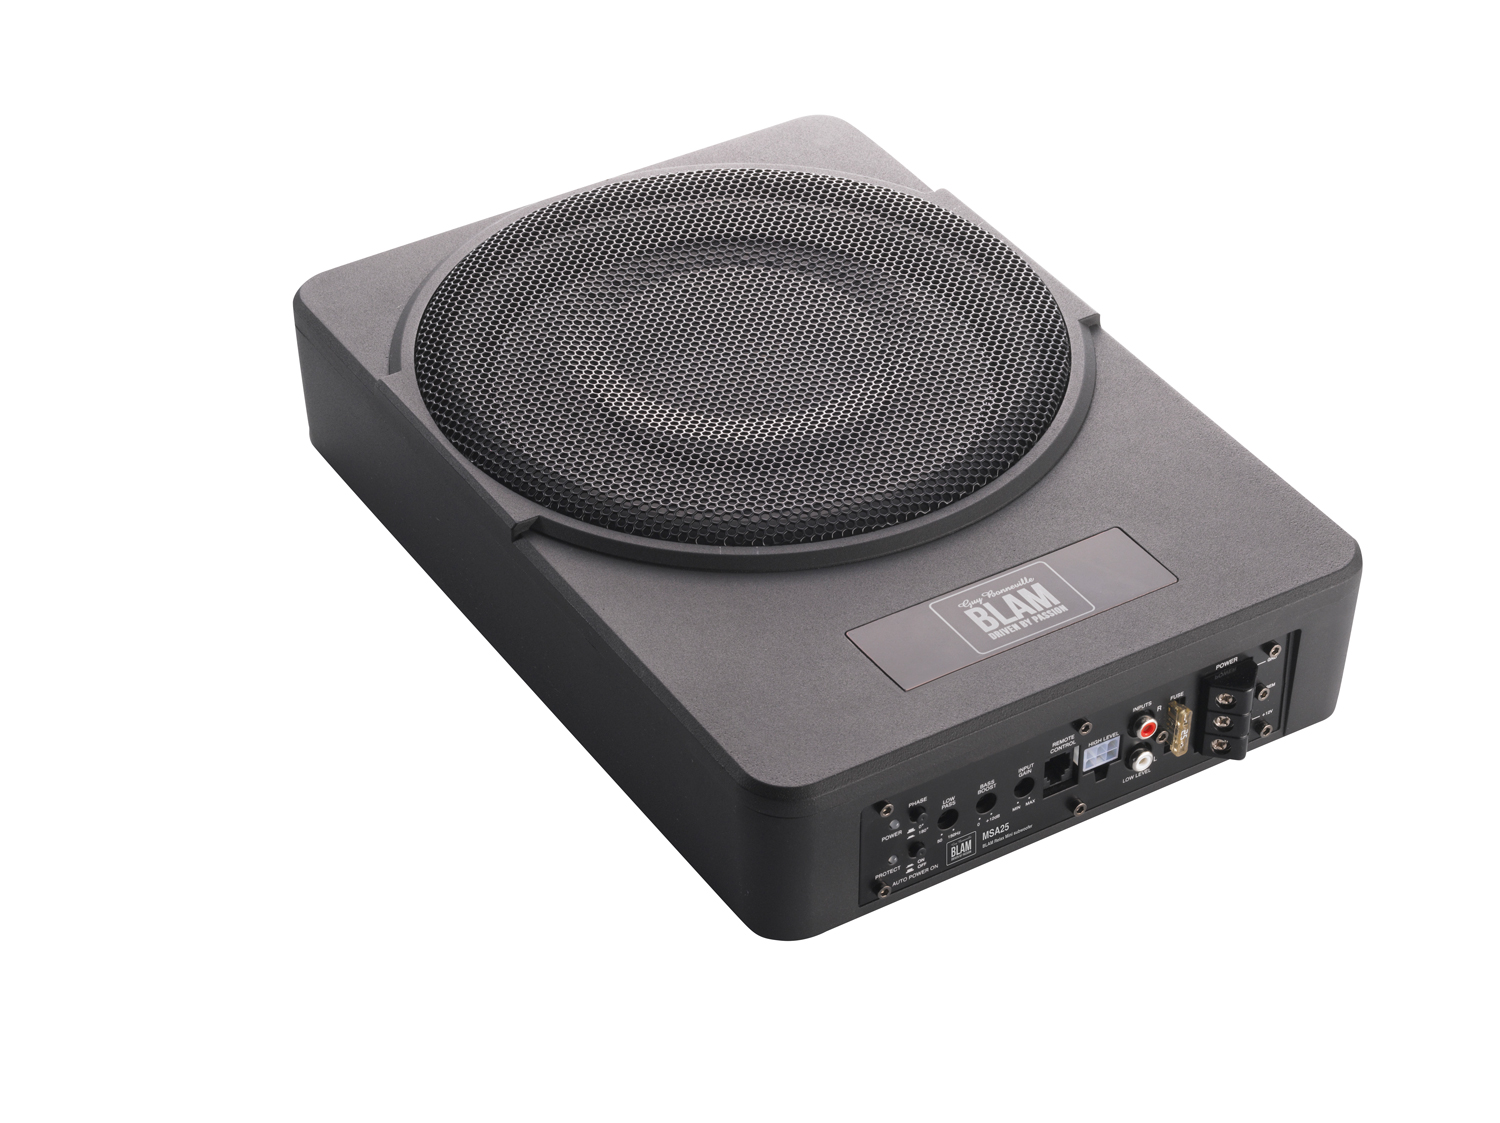 Blam 25cm (10 inch) underseat subwoofer with built-in 250w amplifier